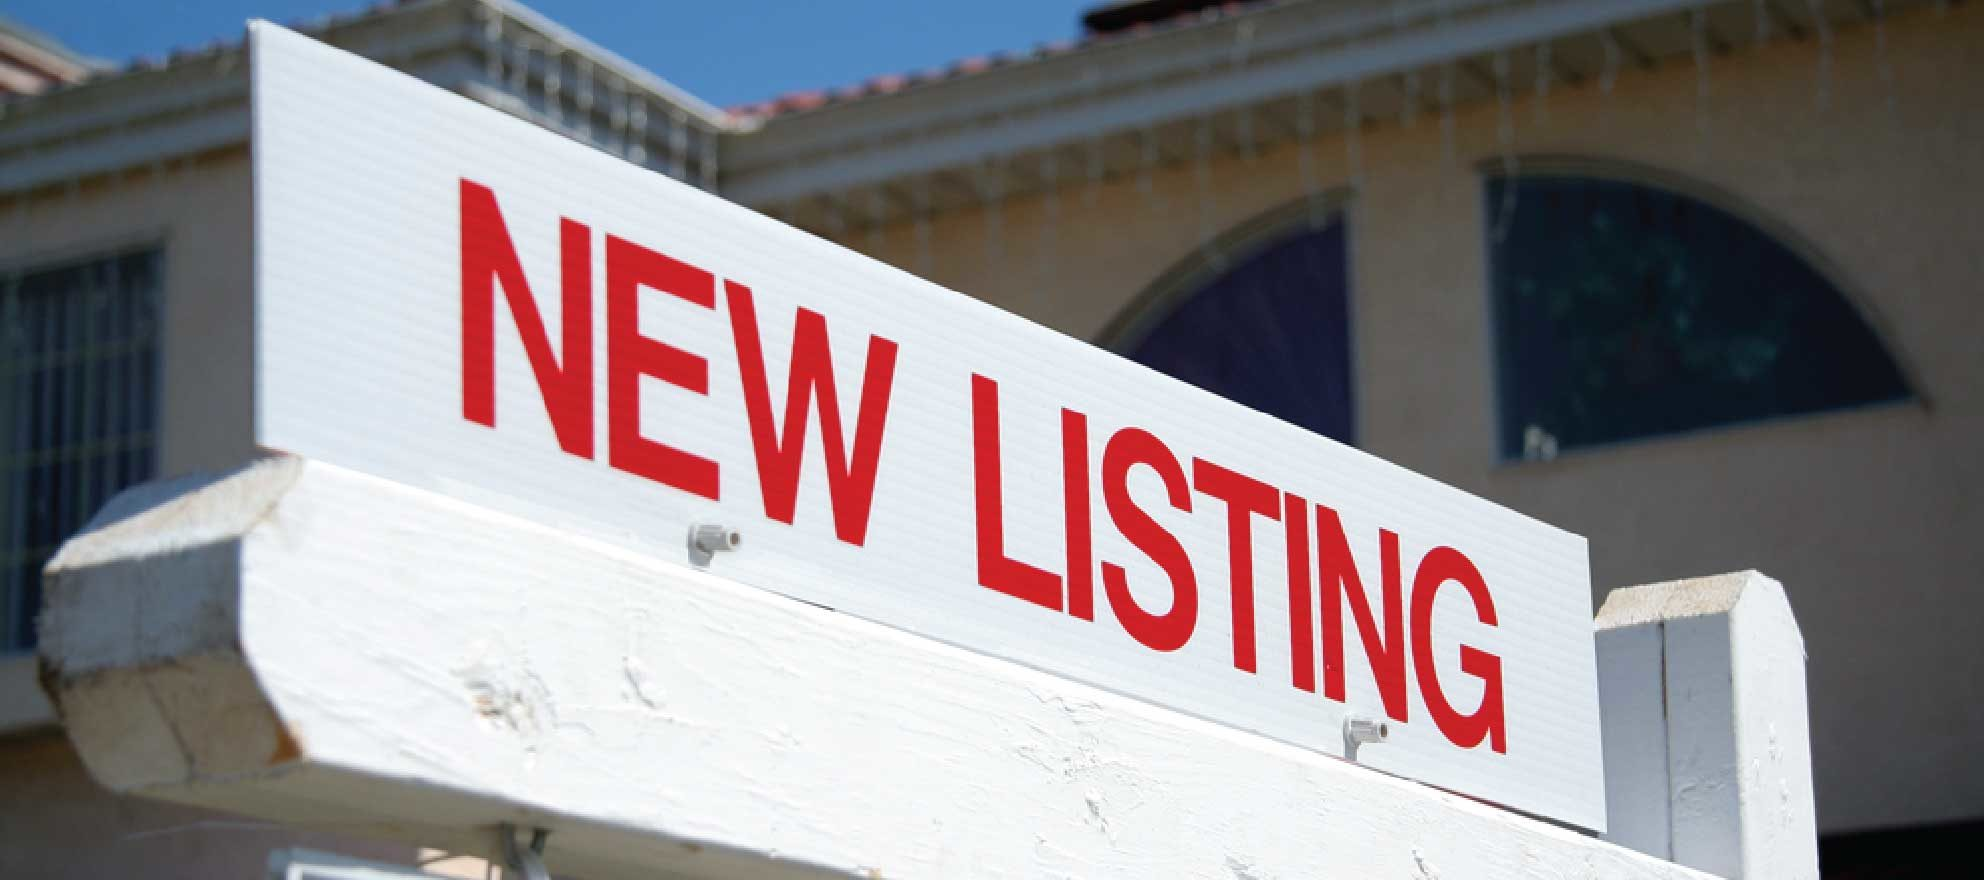 7 p s of real estate listing marketing